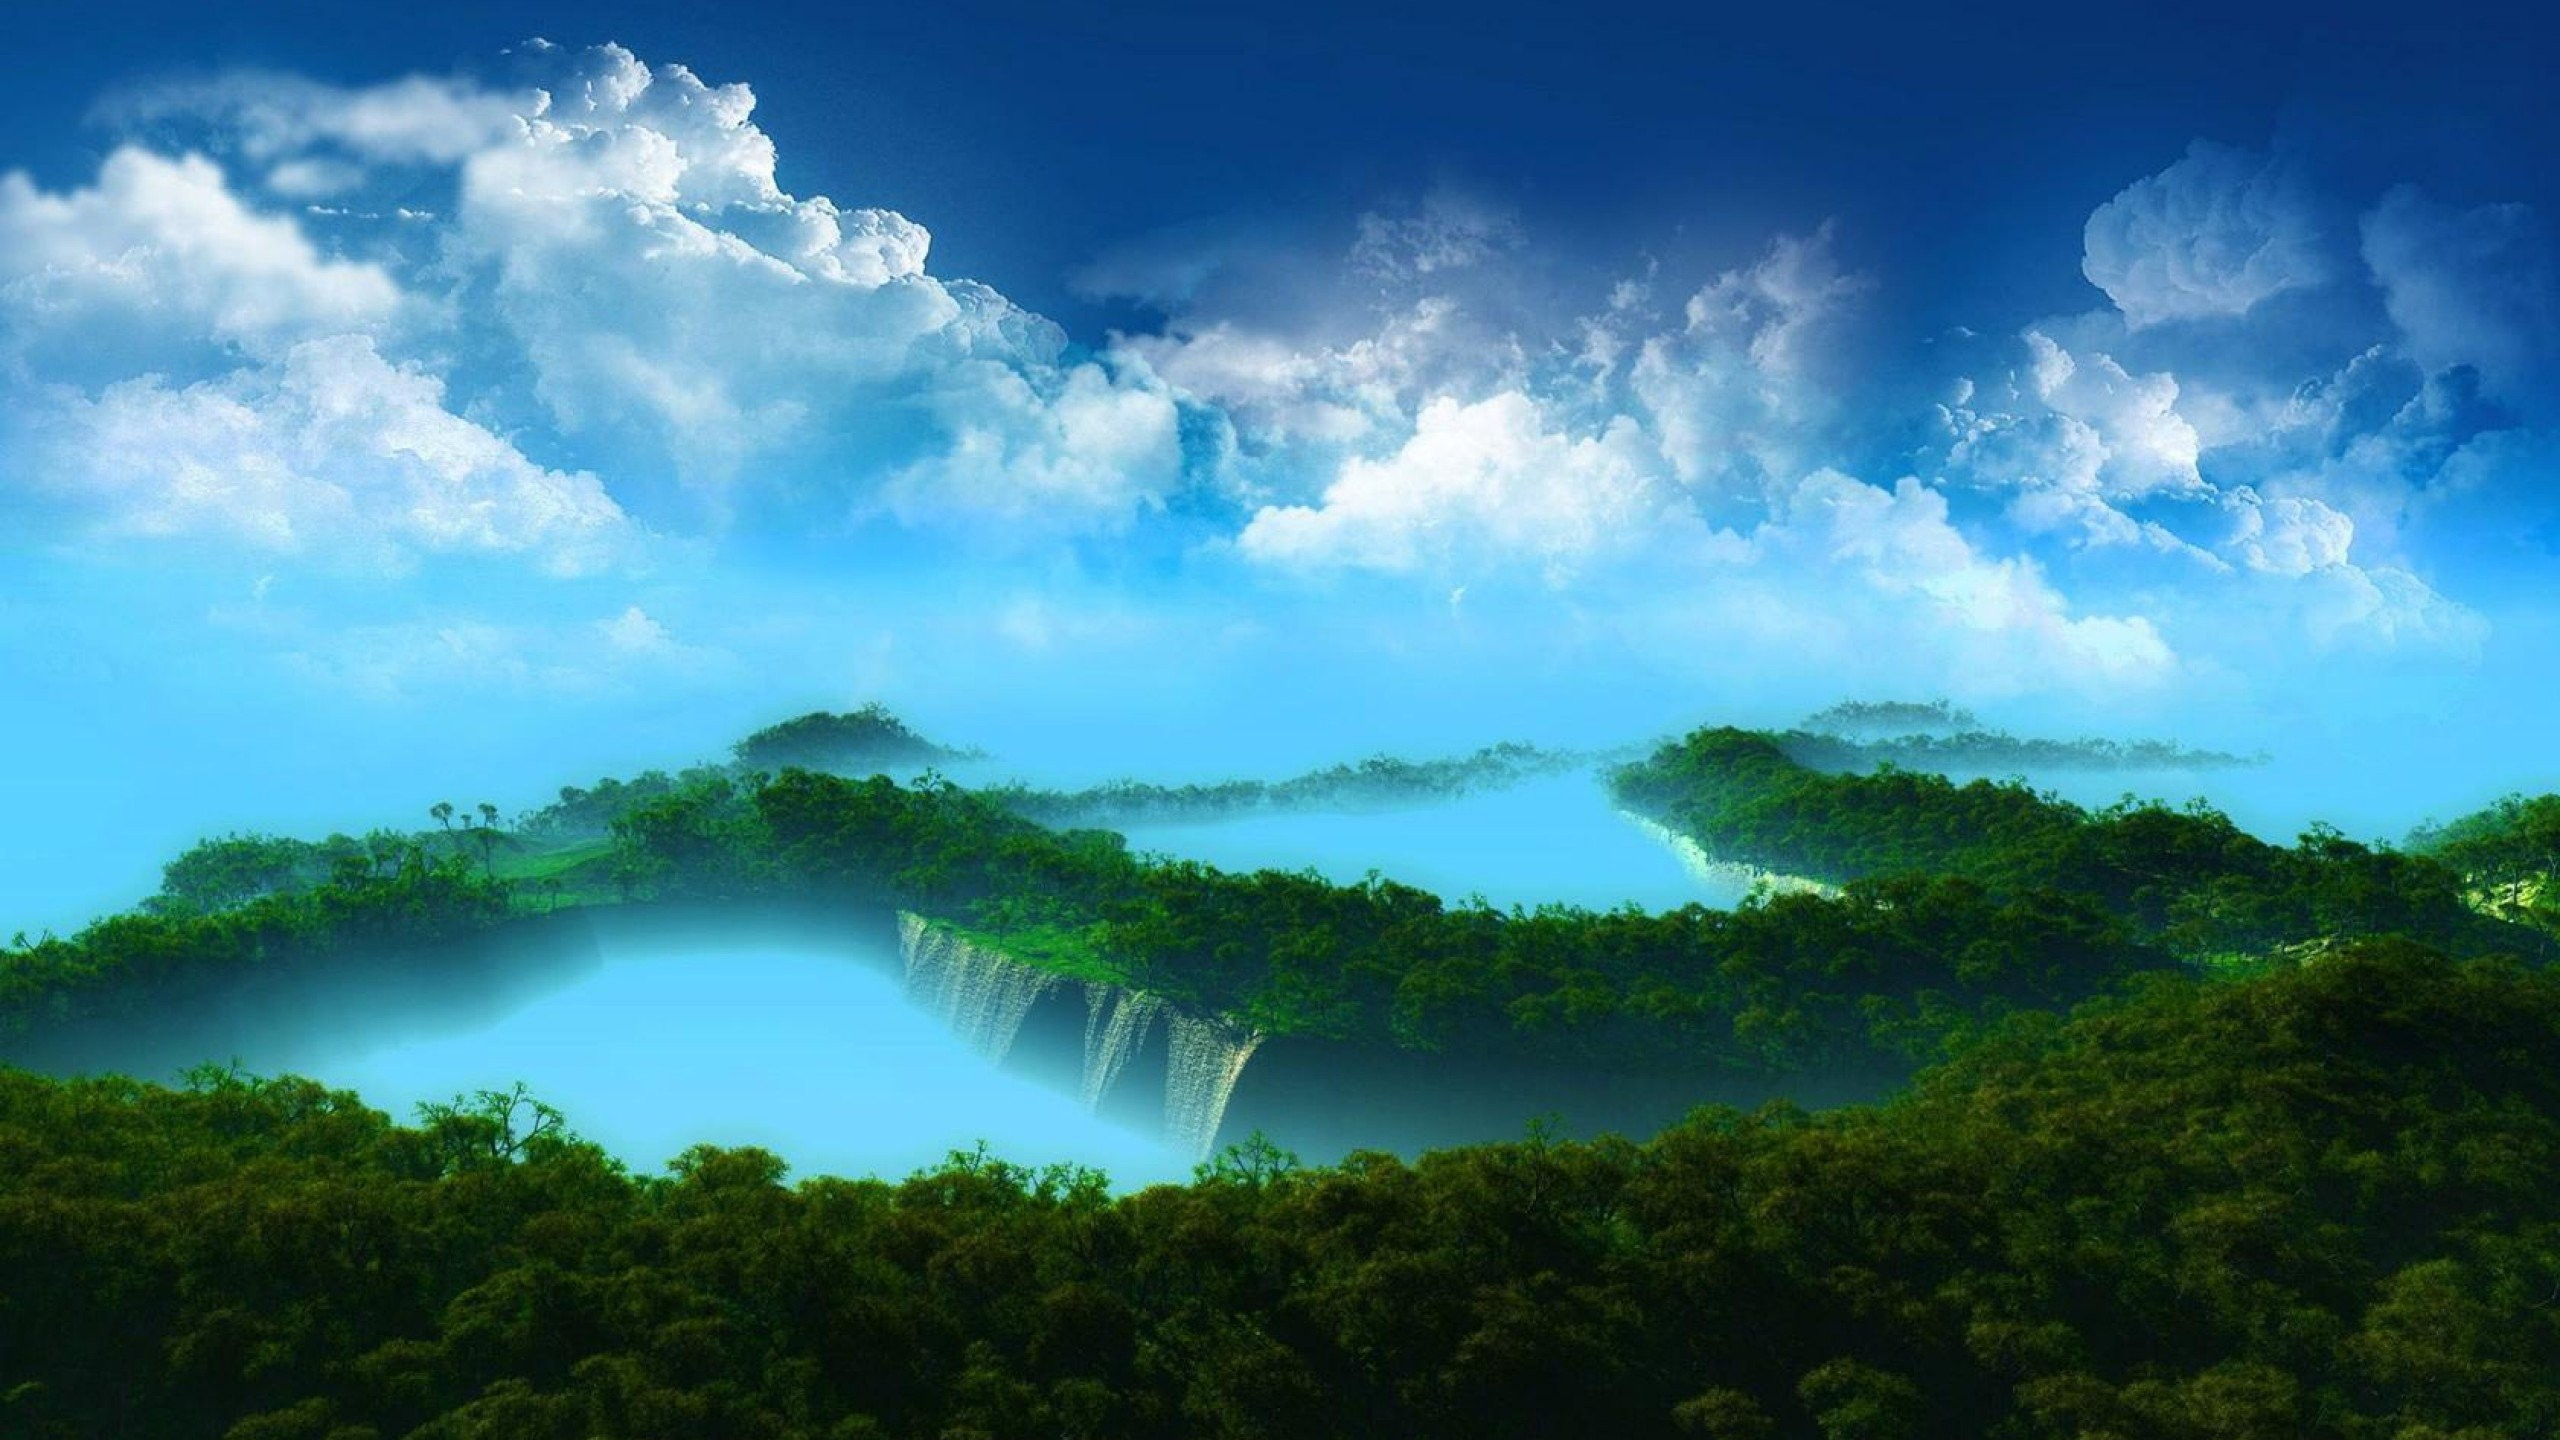 Amazing Forests Forest Scary Space Images High Resolution - Landscape Oil Painting On Canvas - HD Wallpaper